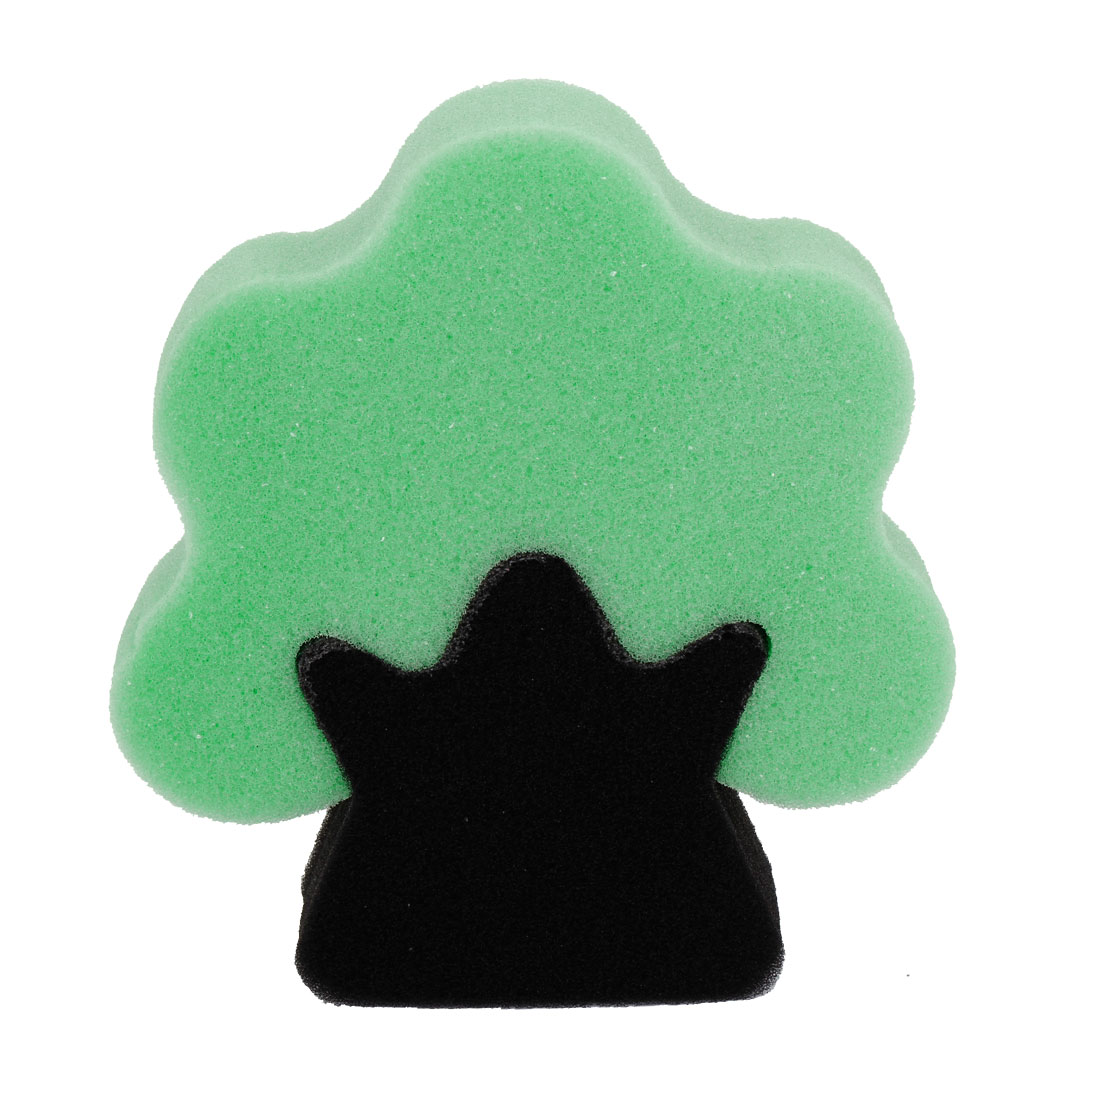 Tree Shape Black Green Bath Sponge Body Exfoliate Shower Loop Scrubber